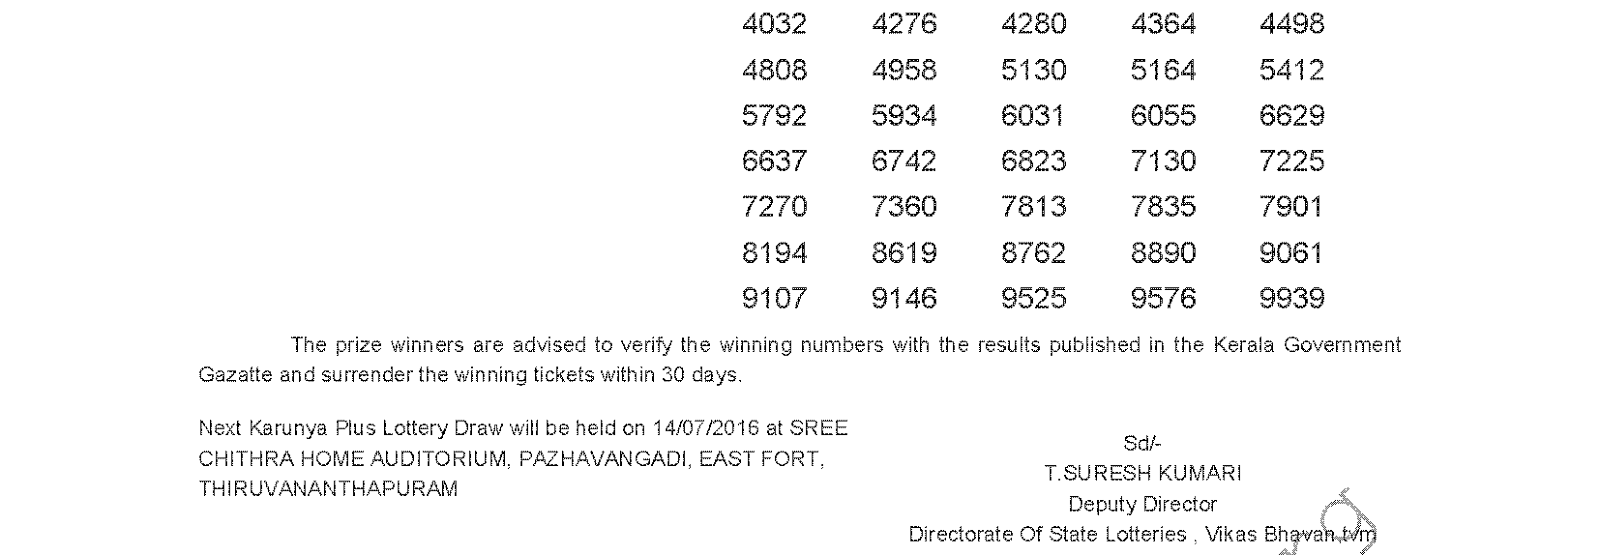 KARUNYA PLUS Lottery KN 117 Results 7-7-2016